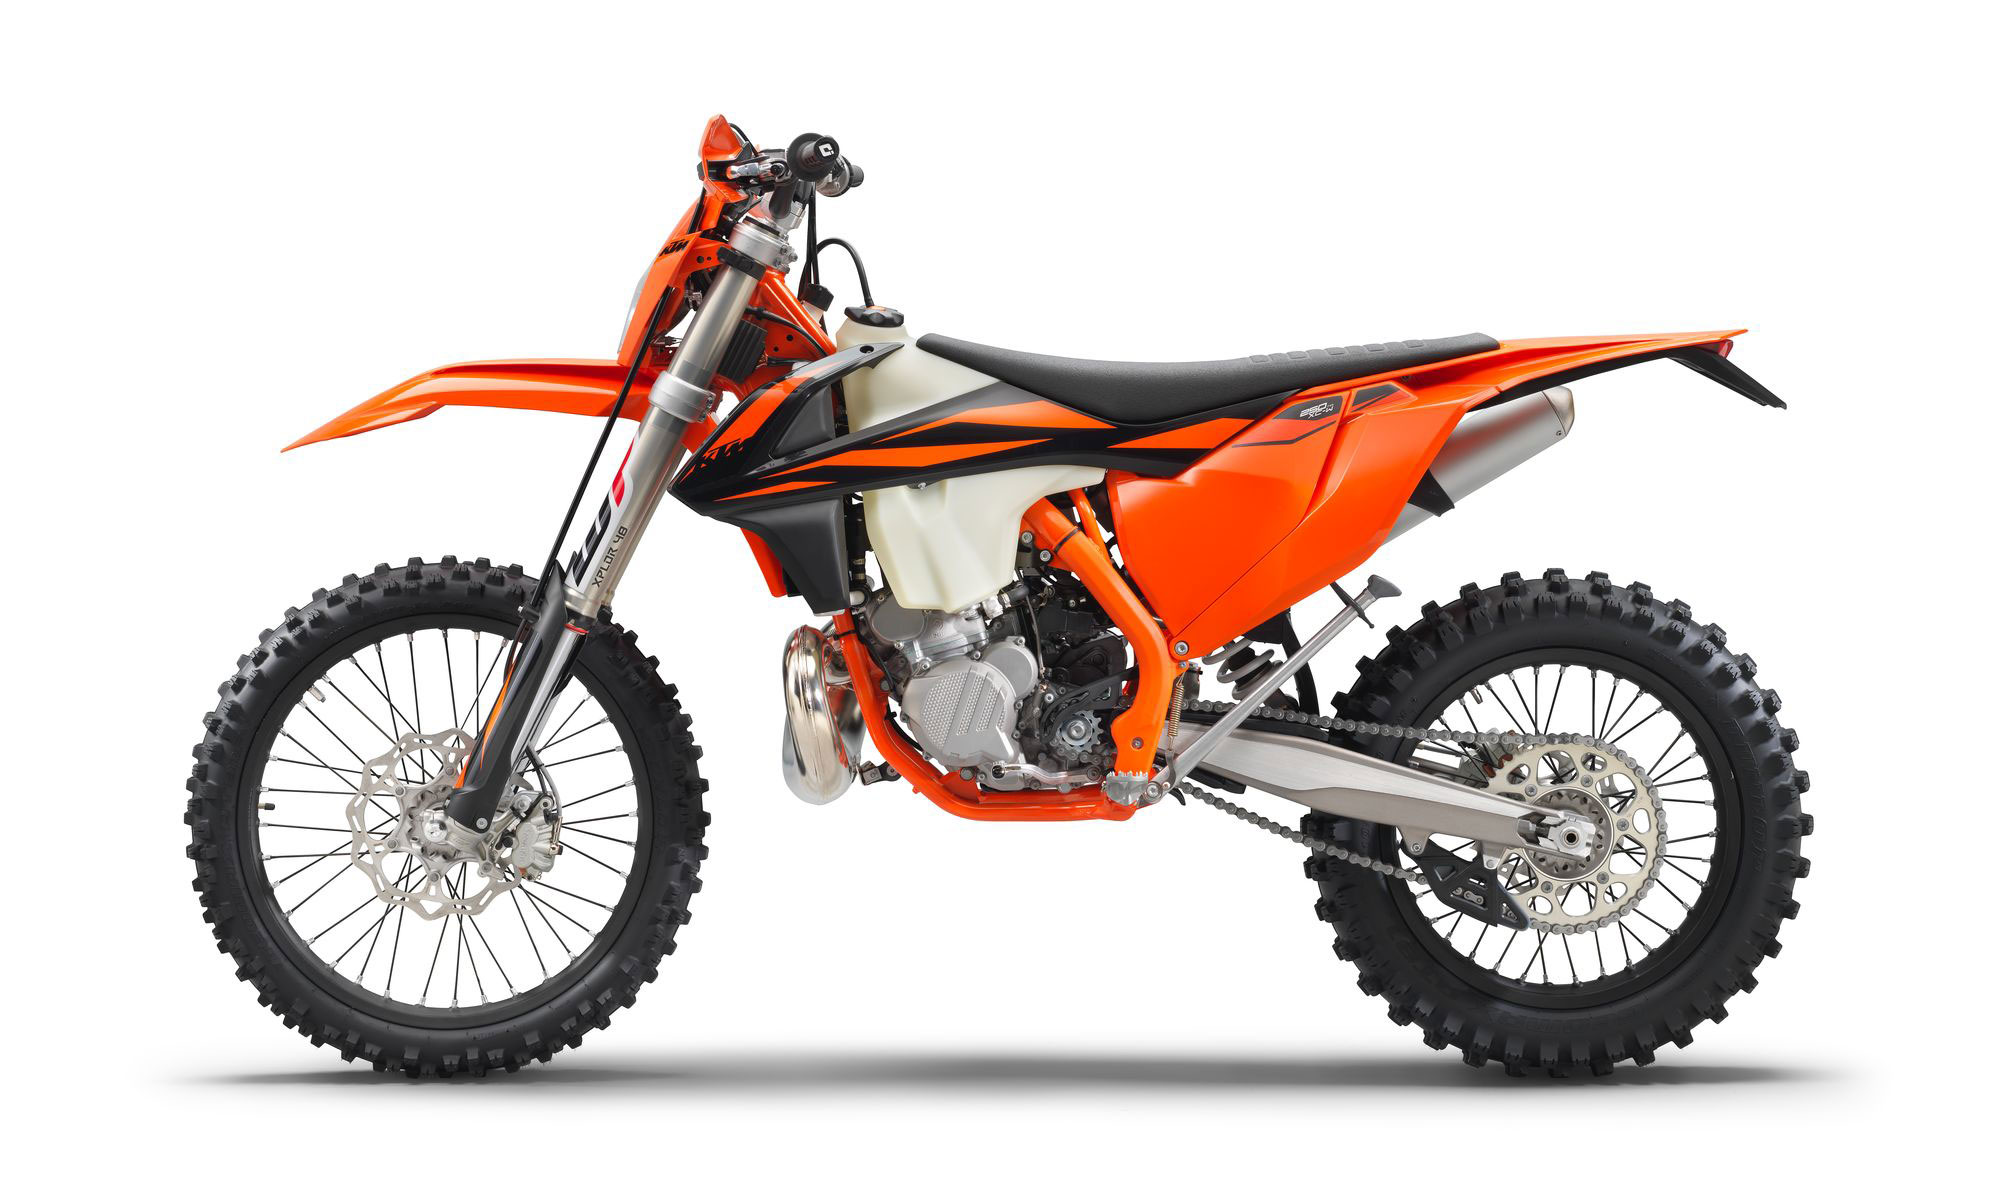 2019 ktm 250 xc w tpi guide total motorcycle. Black Bedroom Furniture Sets. Home Design Ideas